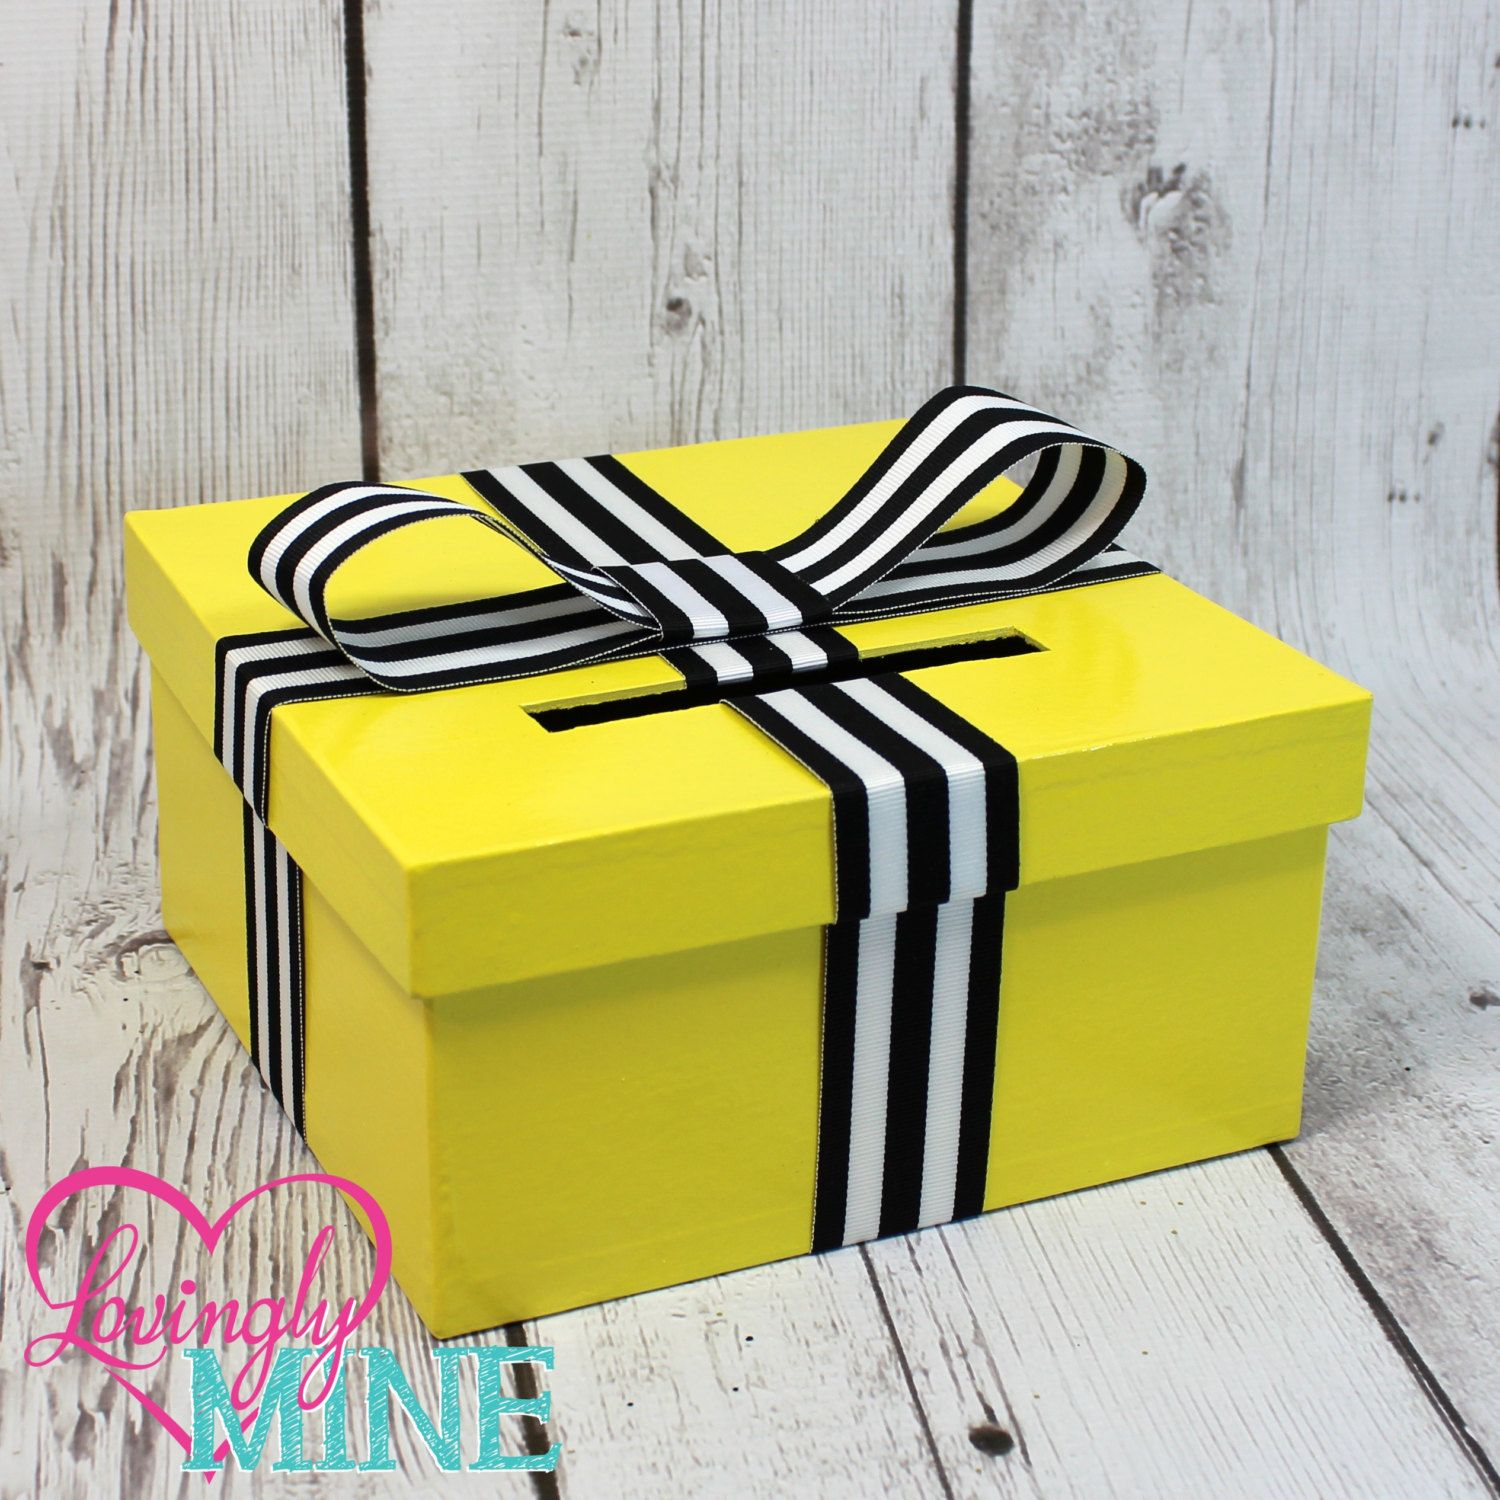 mini card box - size 8 x 8 x 4 - bee yellow box with white & black